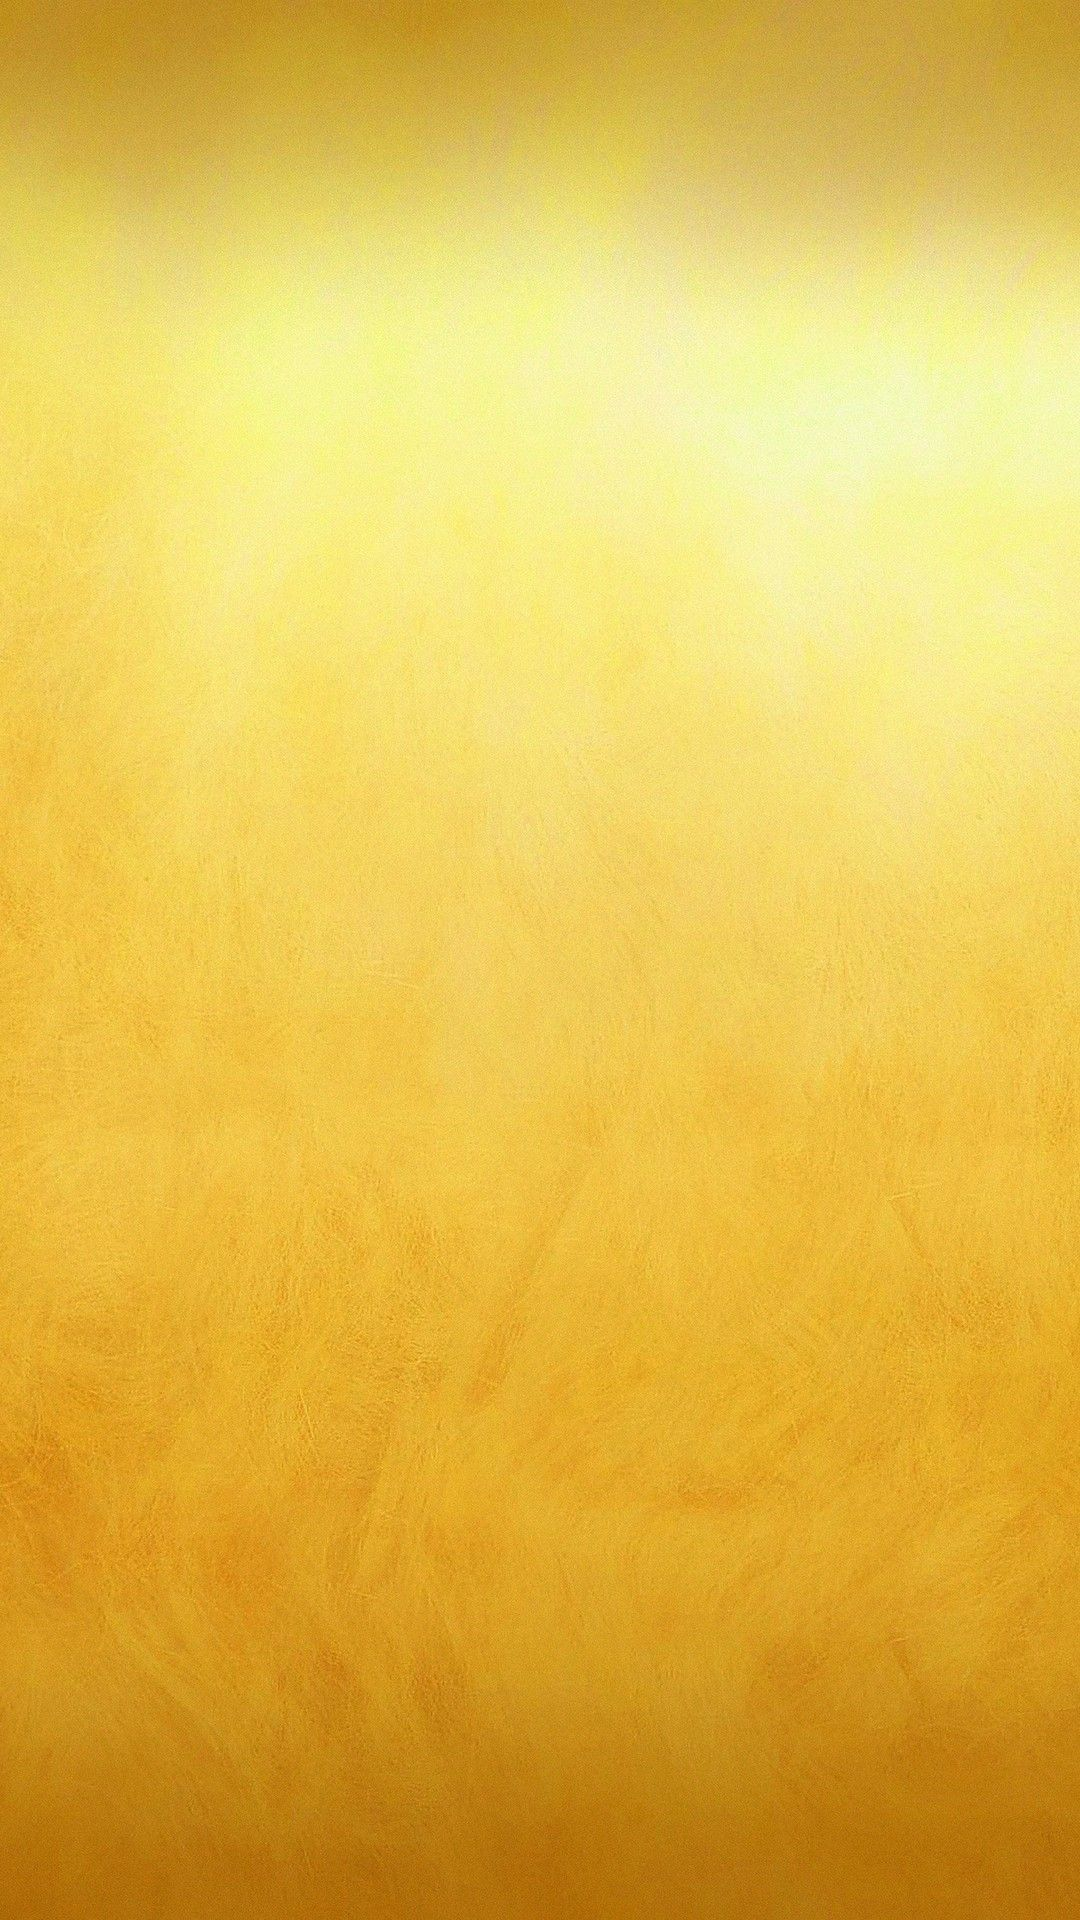 IPhone X Wallpaper Plain Gold